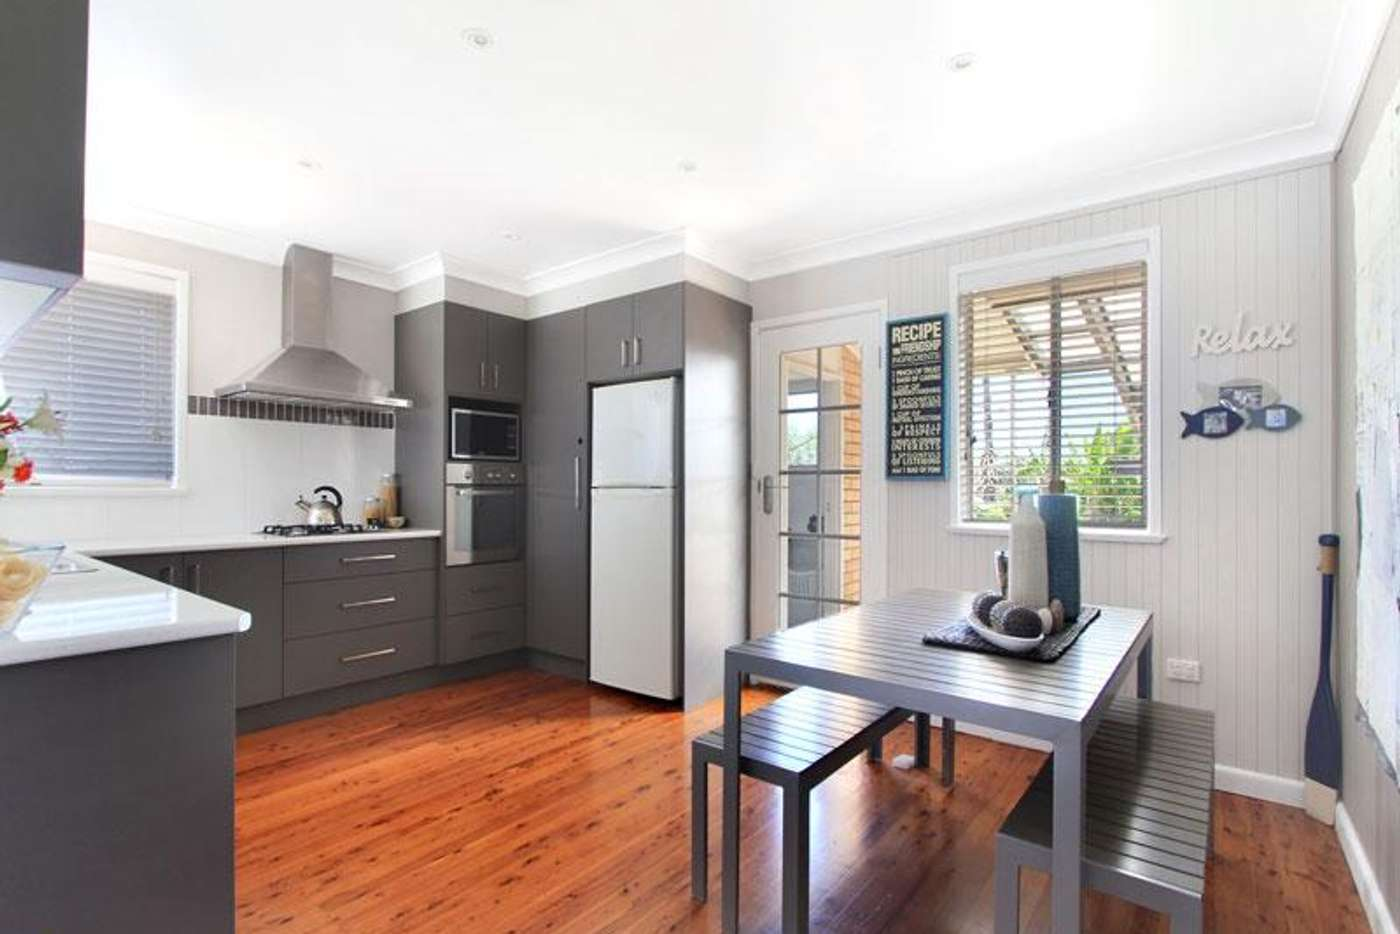 Main view of Homely house listing, 17 Ash Avenue, Albion Park Rail NSW 2527